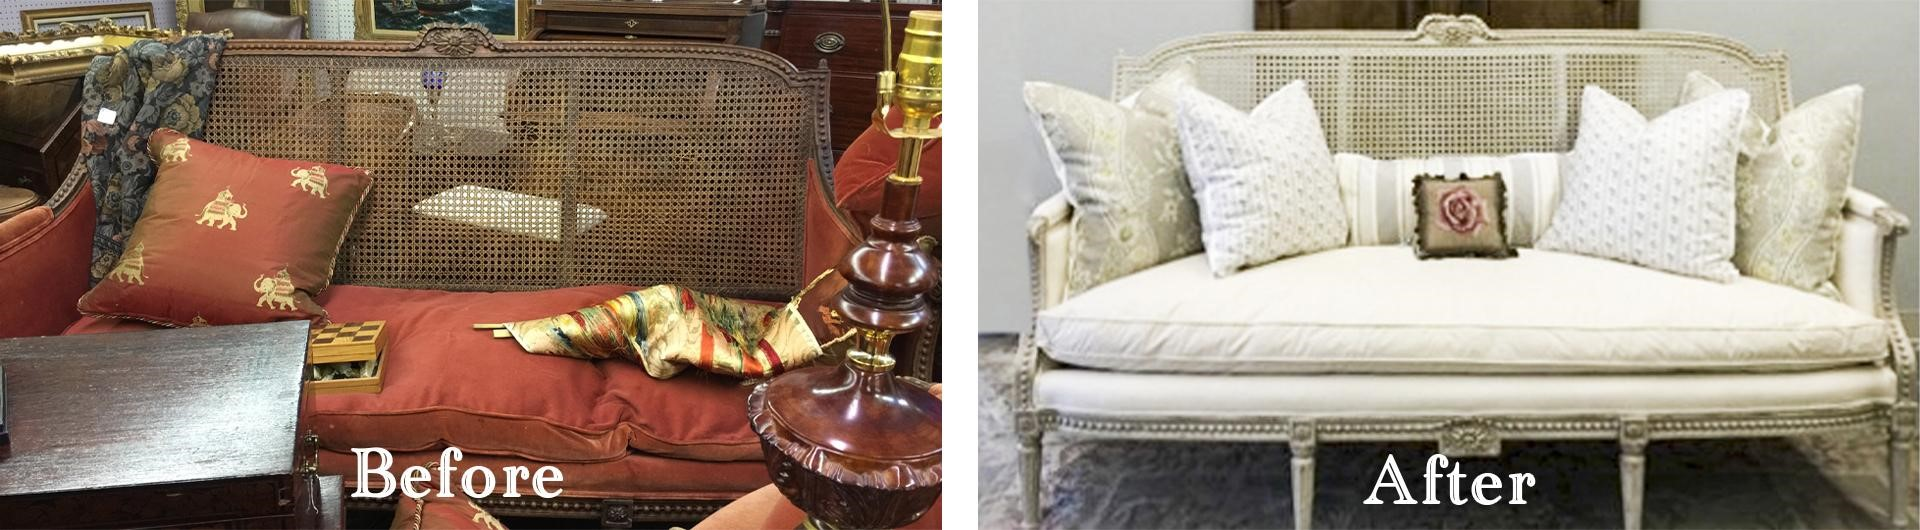 Amitha Verma Chalk Finish Paint in Belgian Blue before and after makeover on an antique cane-back sofa.